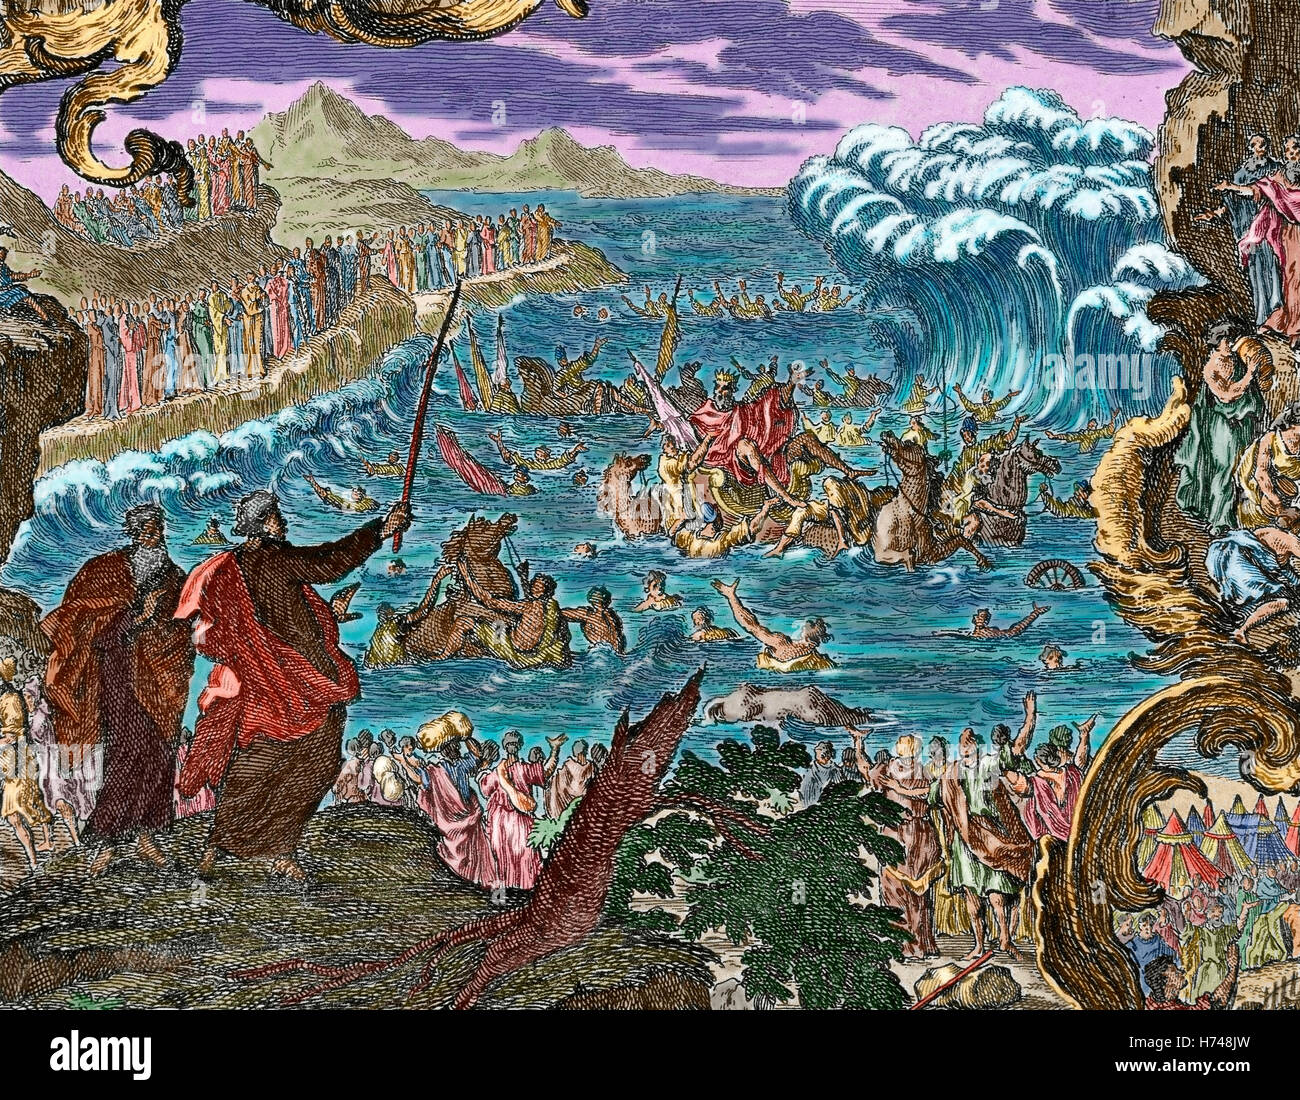 Parting of the waters of the Red Sea. Book of Exodus. Chapter 15, verse 1. Engraving. Colored. - Stock Image